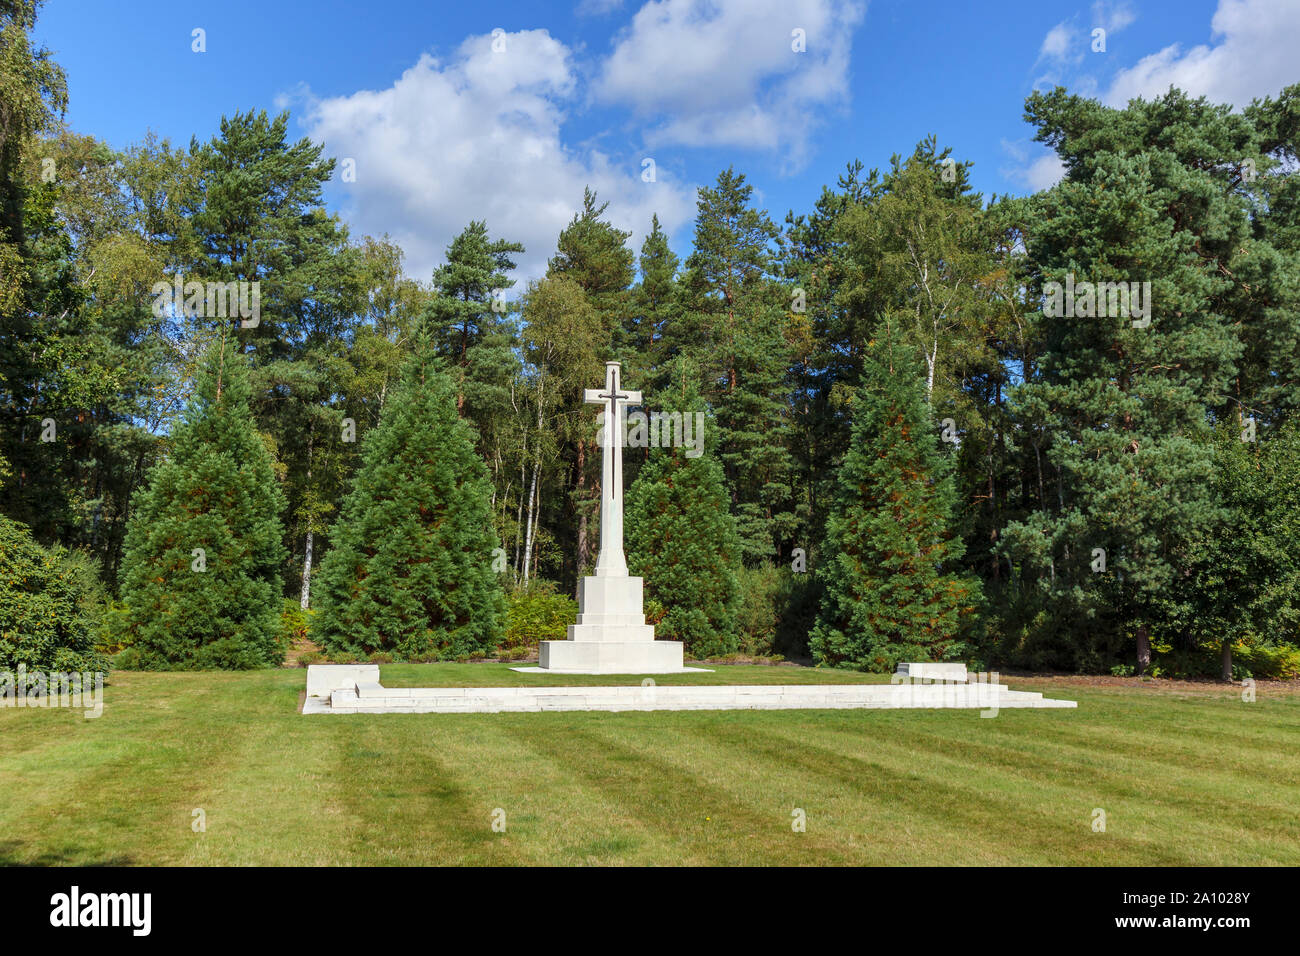 Memorial cross in the Canadian Section of the Military Cemetery at Brookwood Cemetery, Pirbright, Woking, Surrey, southeast England, UK Stock Photo